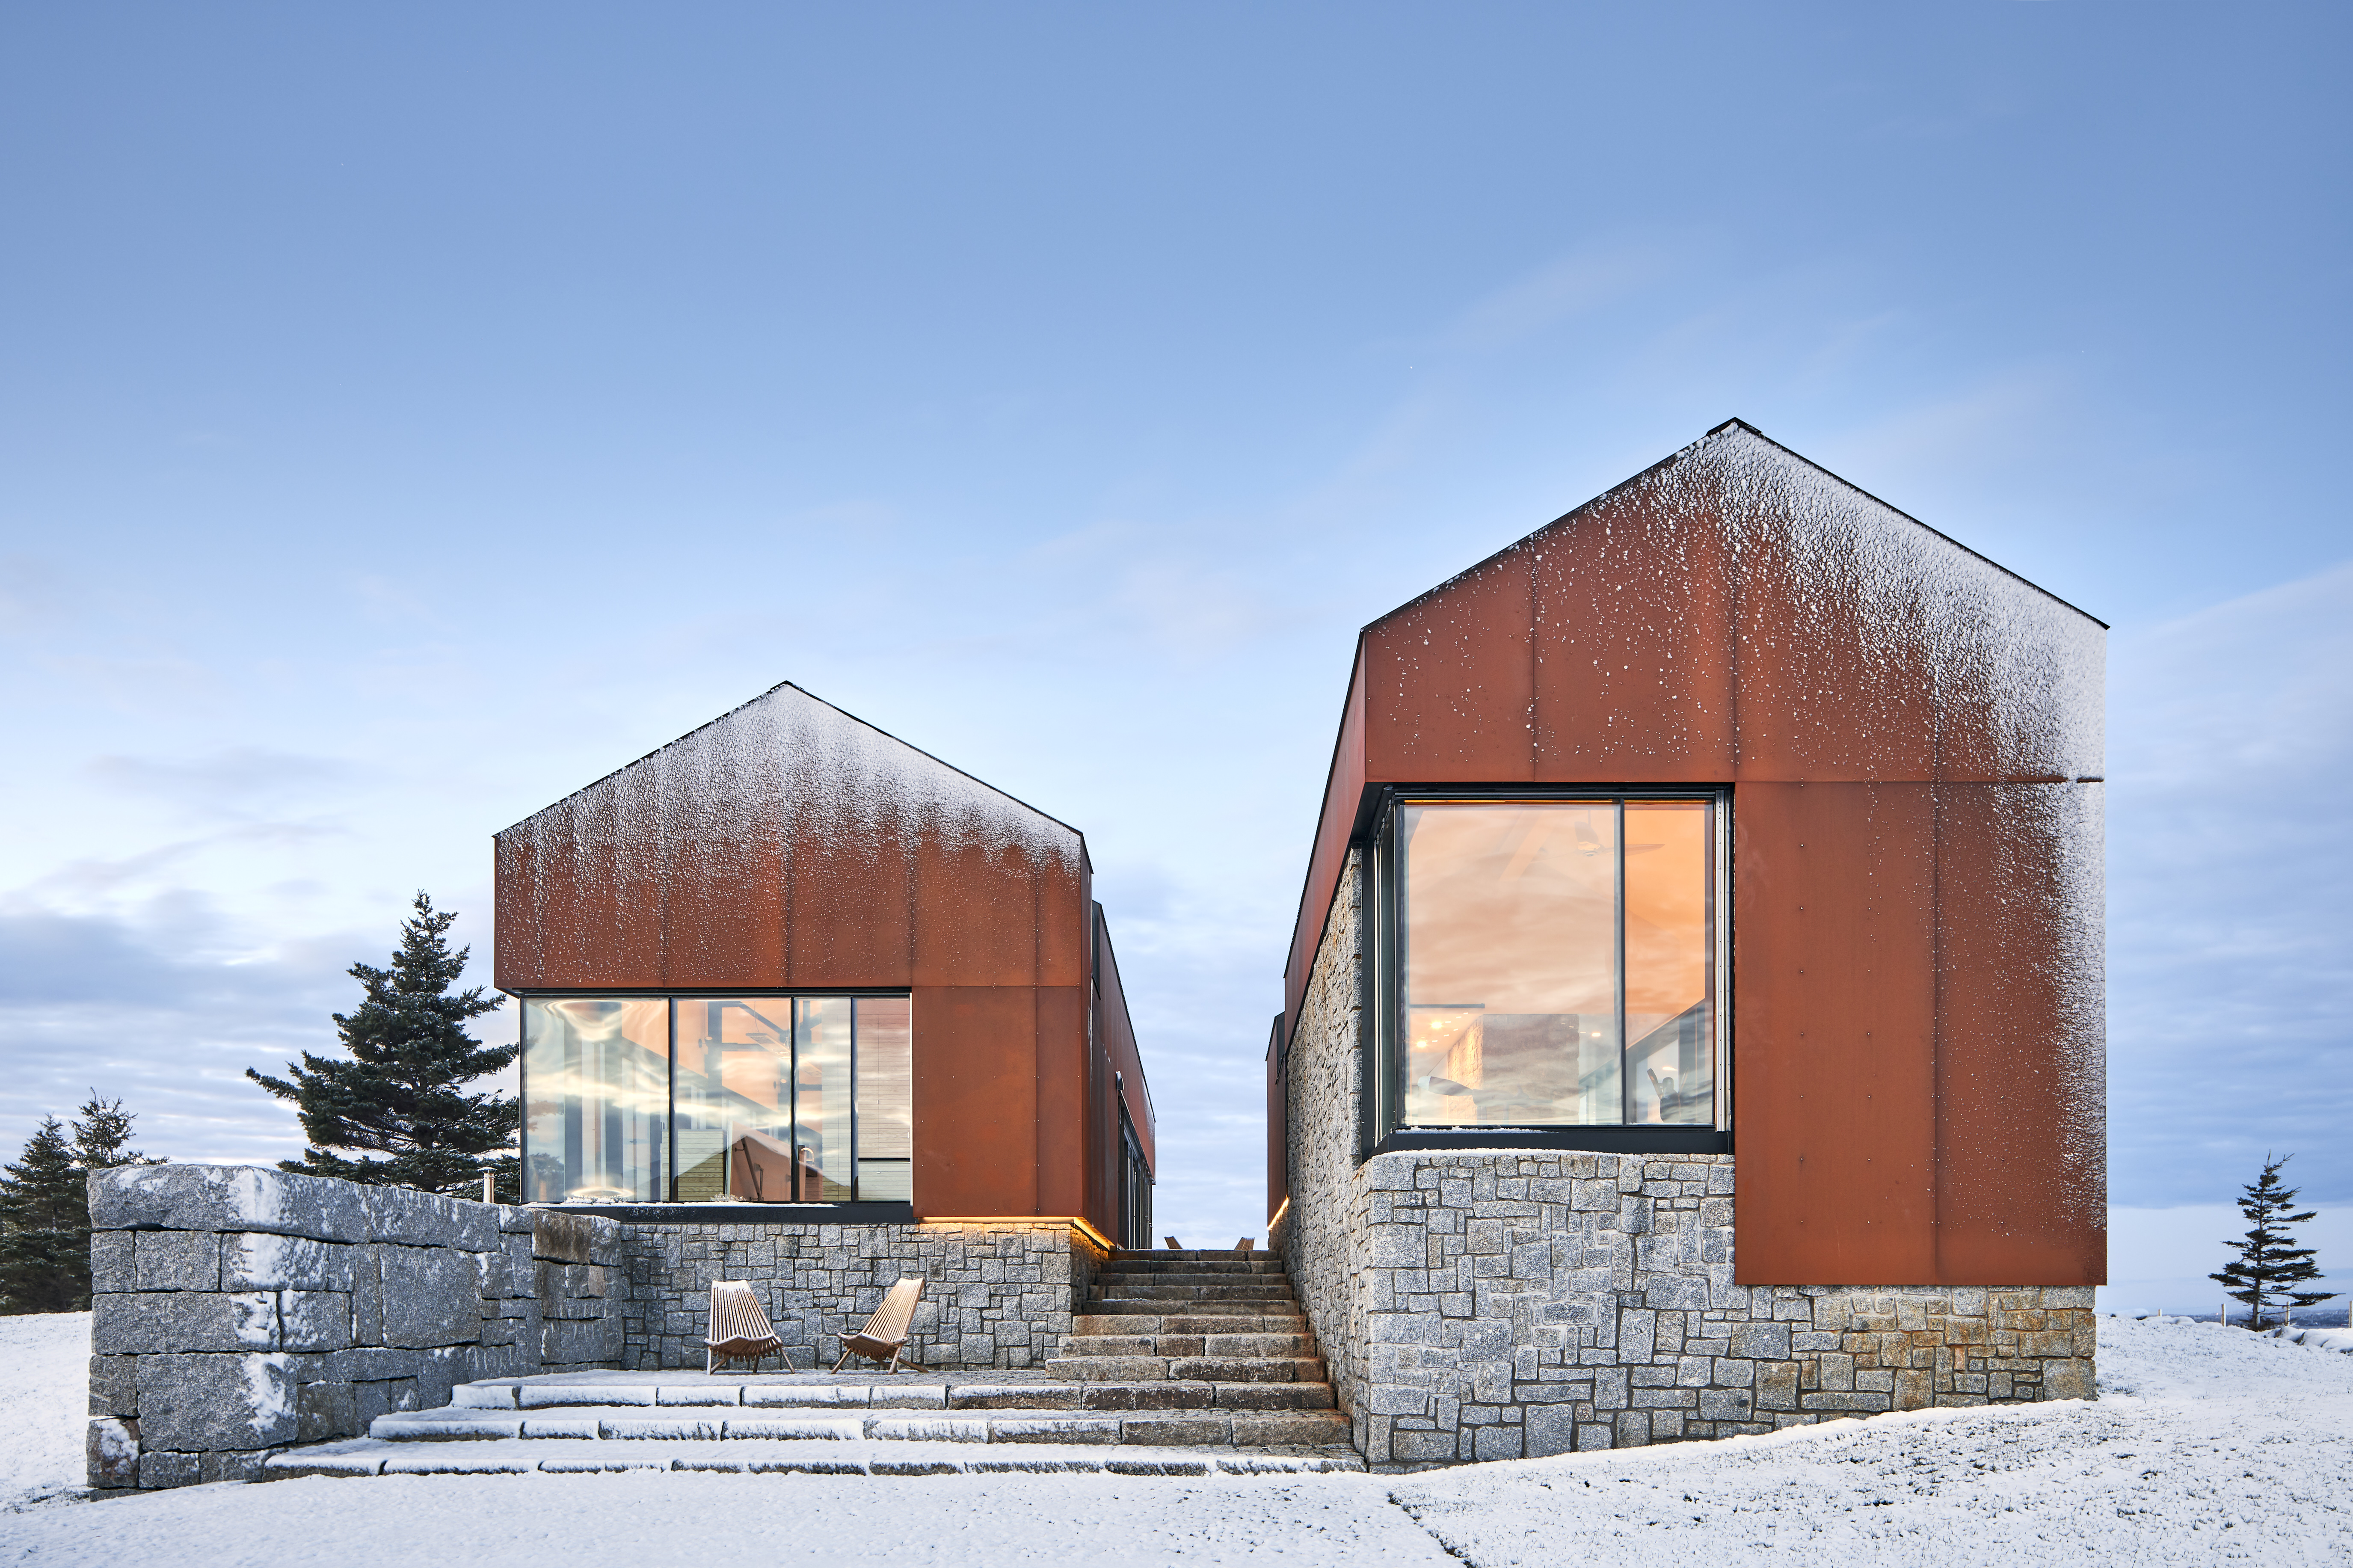 Two gabled barns with red siding and stone base.